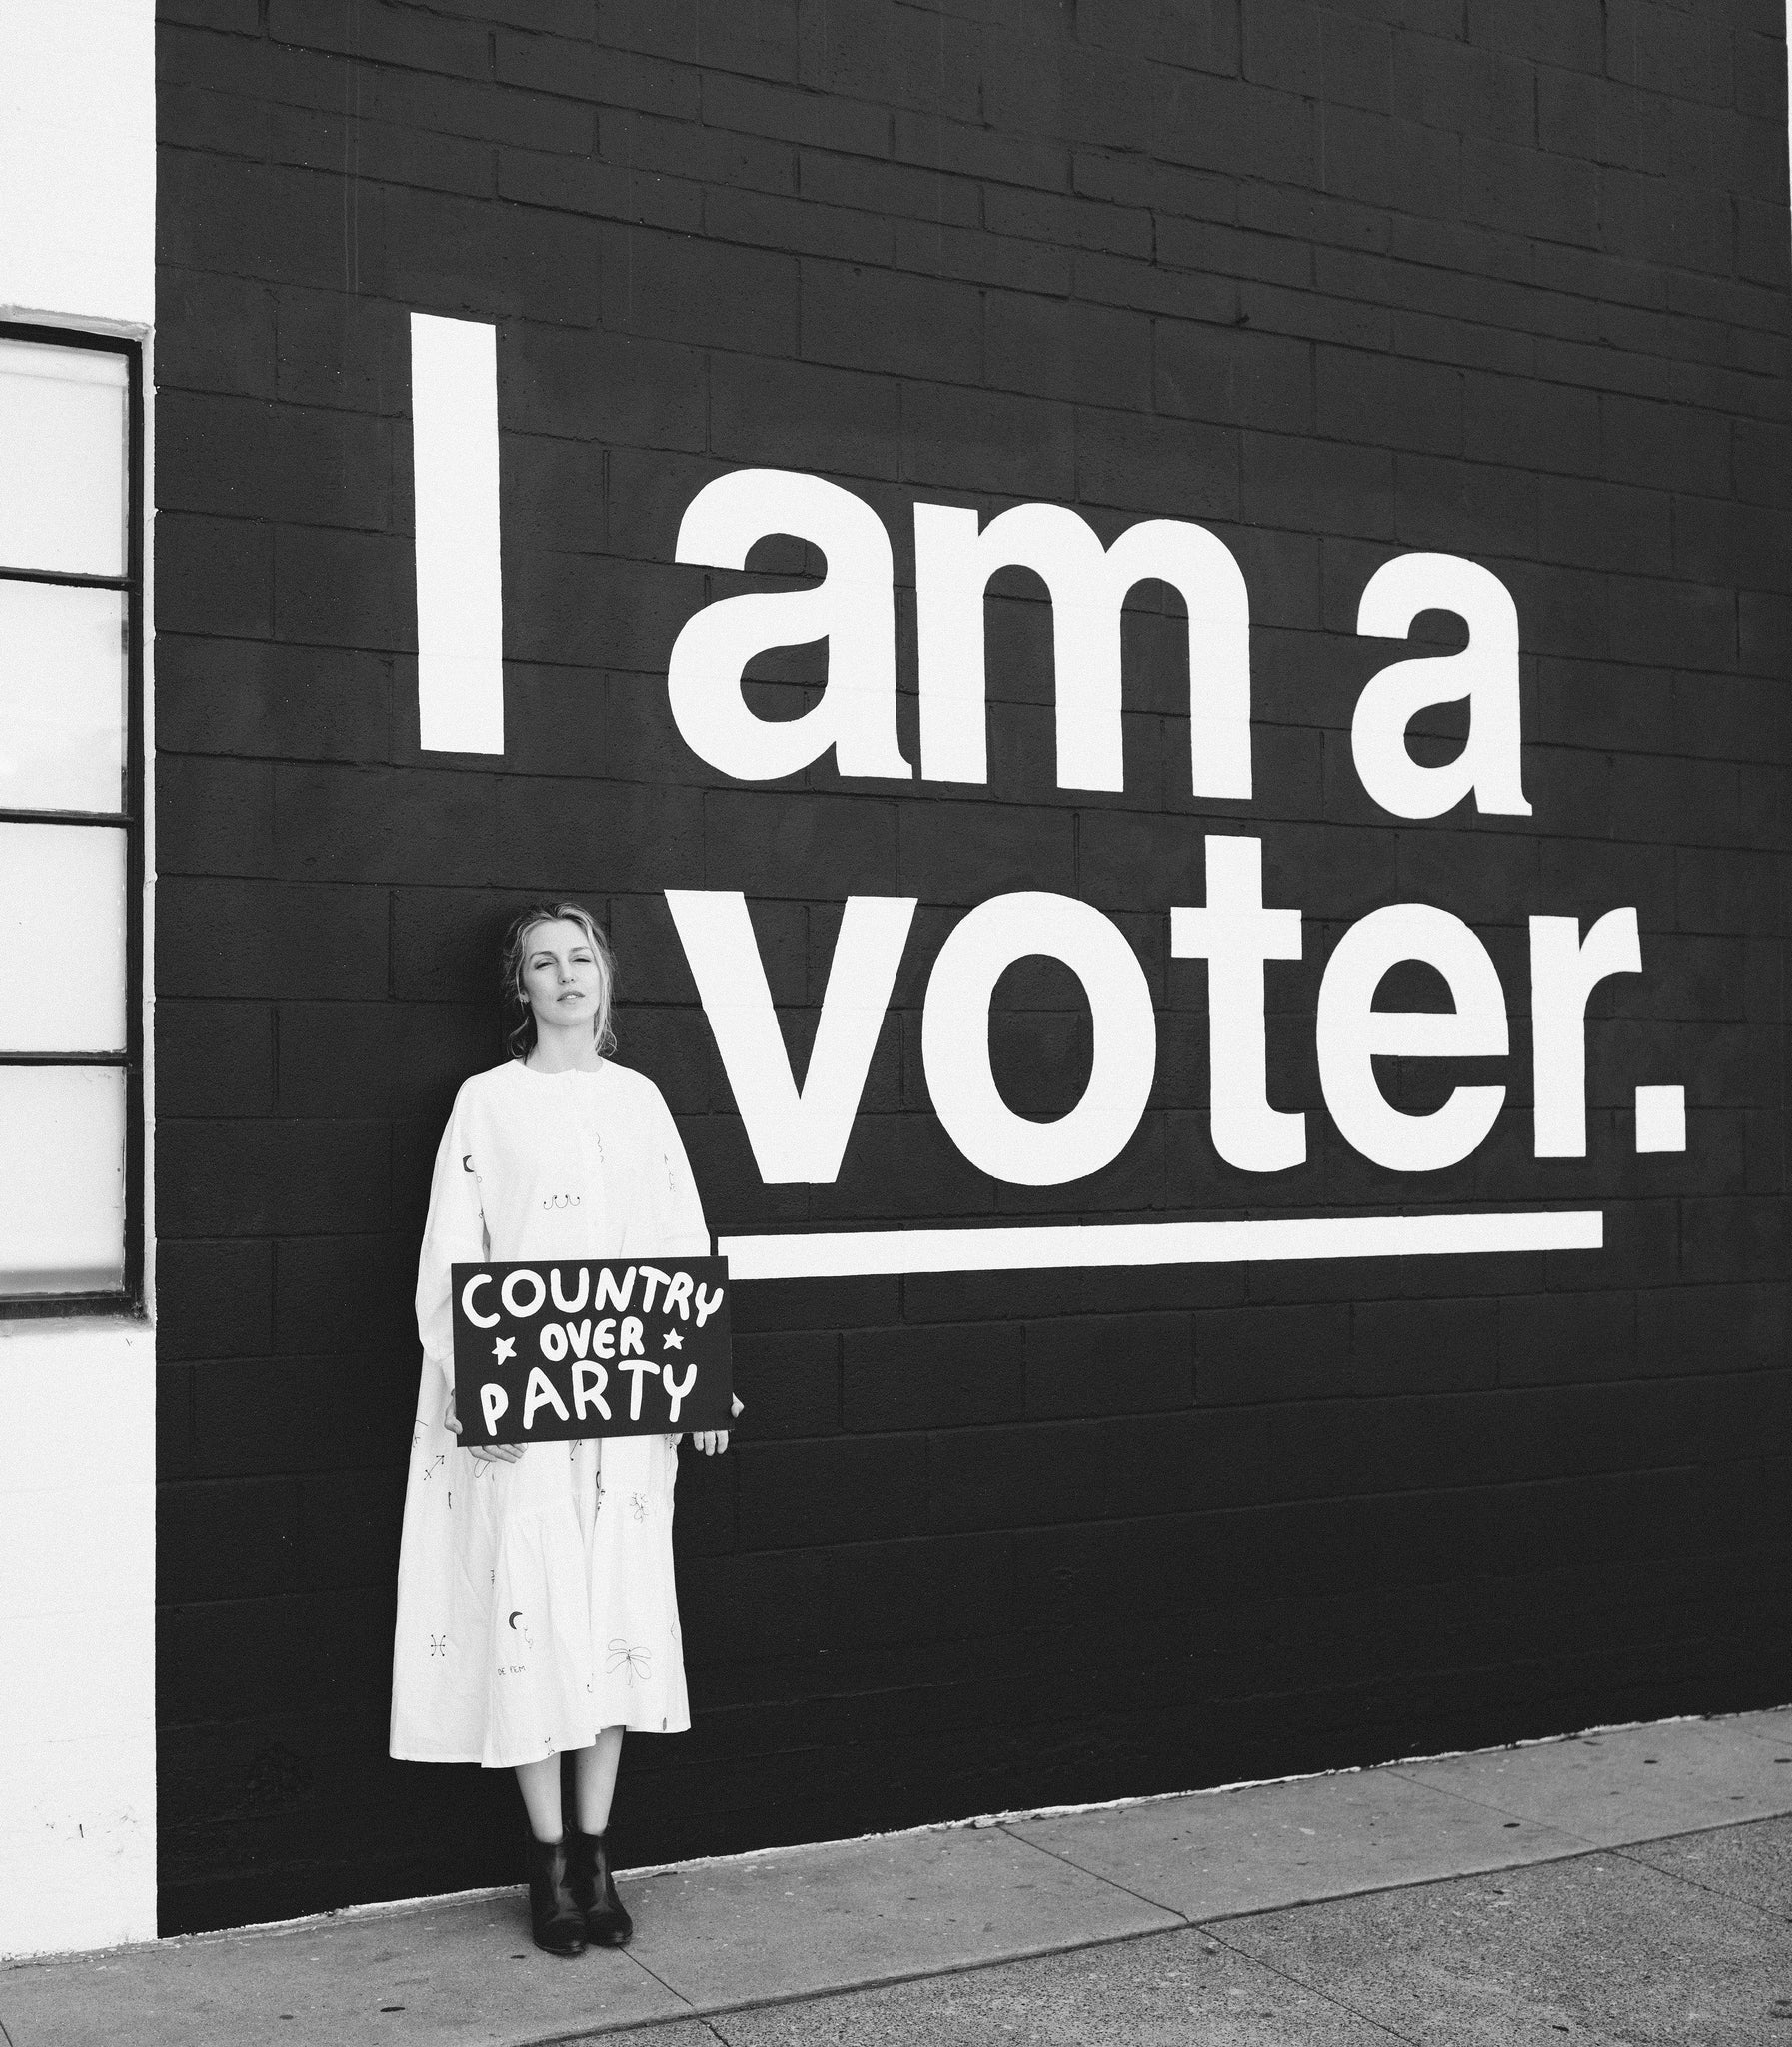 Ashley - I am a voter